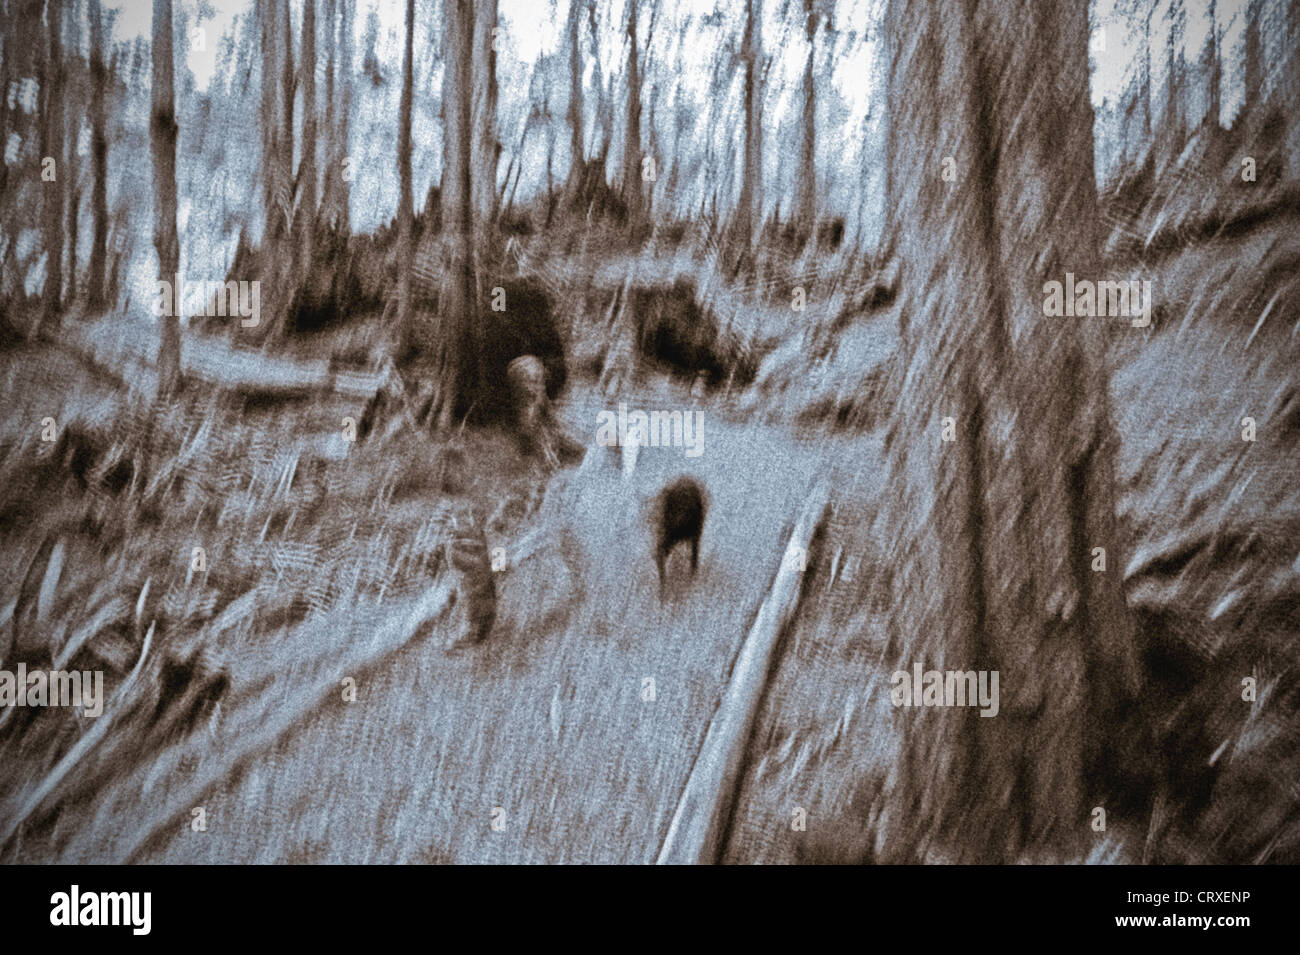 Hiker with dog jogging down trail in the Tongass National Forest, Alaska, USA - Stock Image